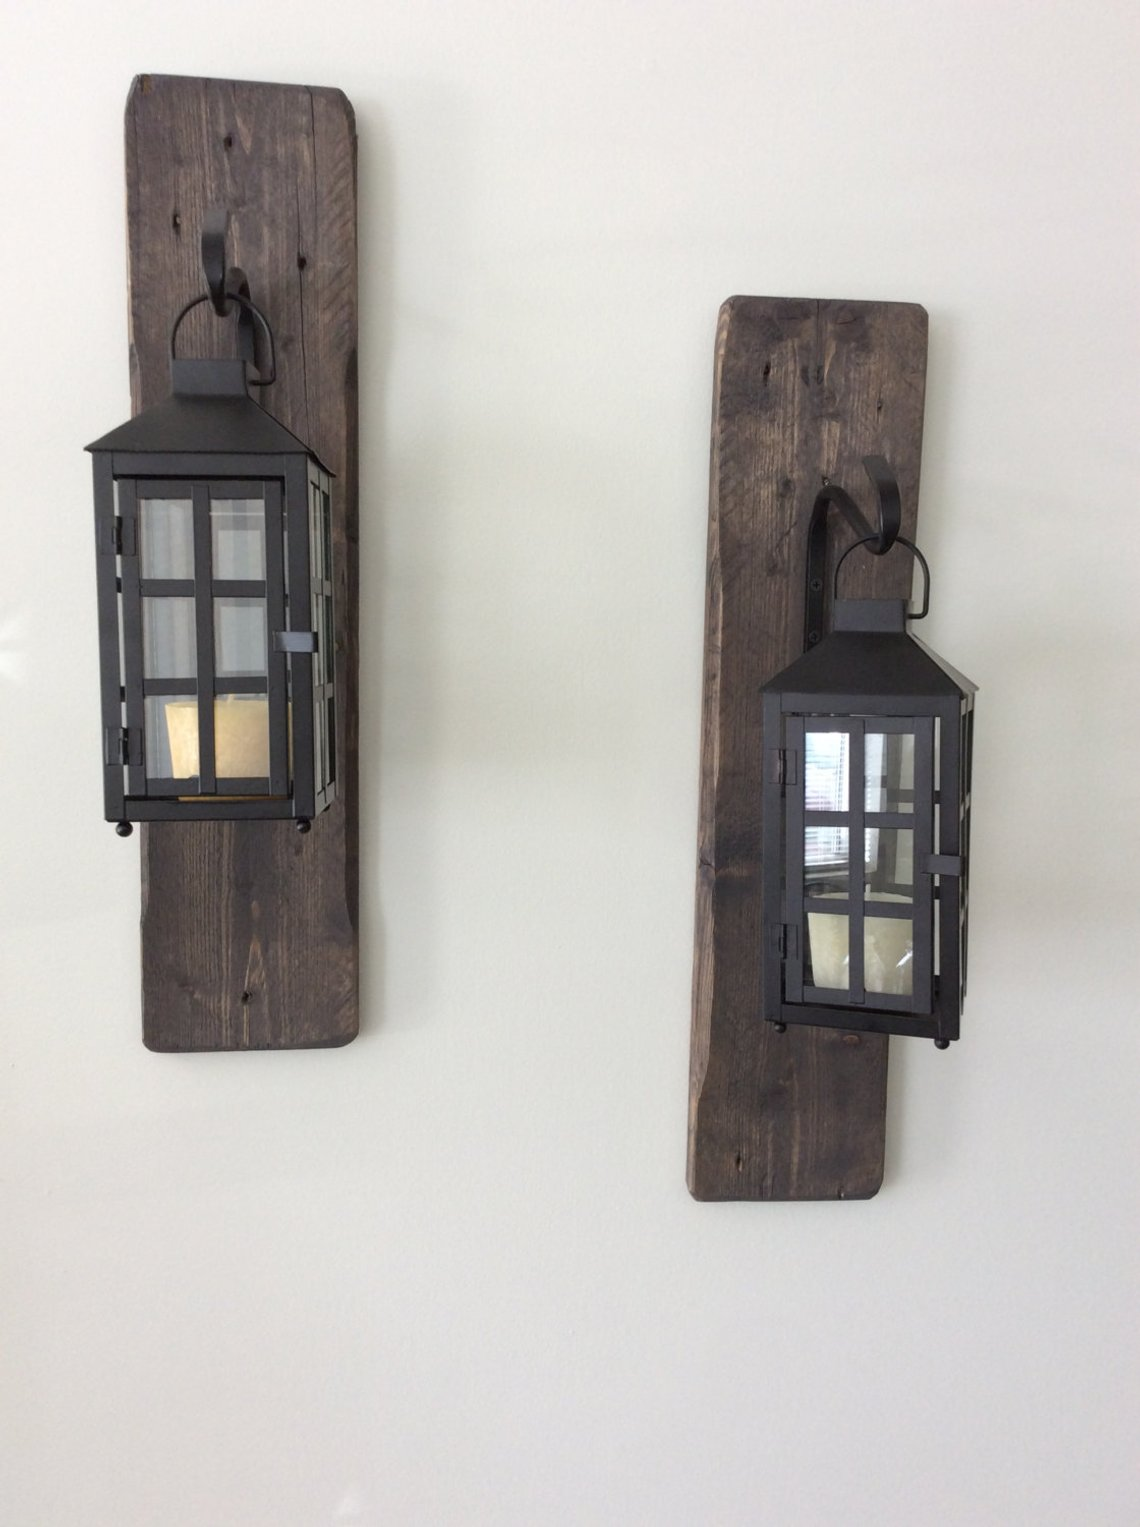 Decorative-rustic-reclaimed-wood-hanging-lanterns-Woodify